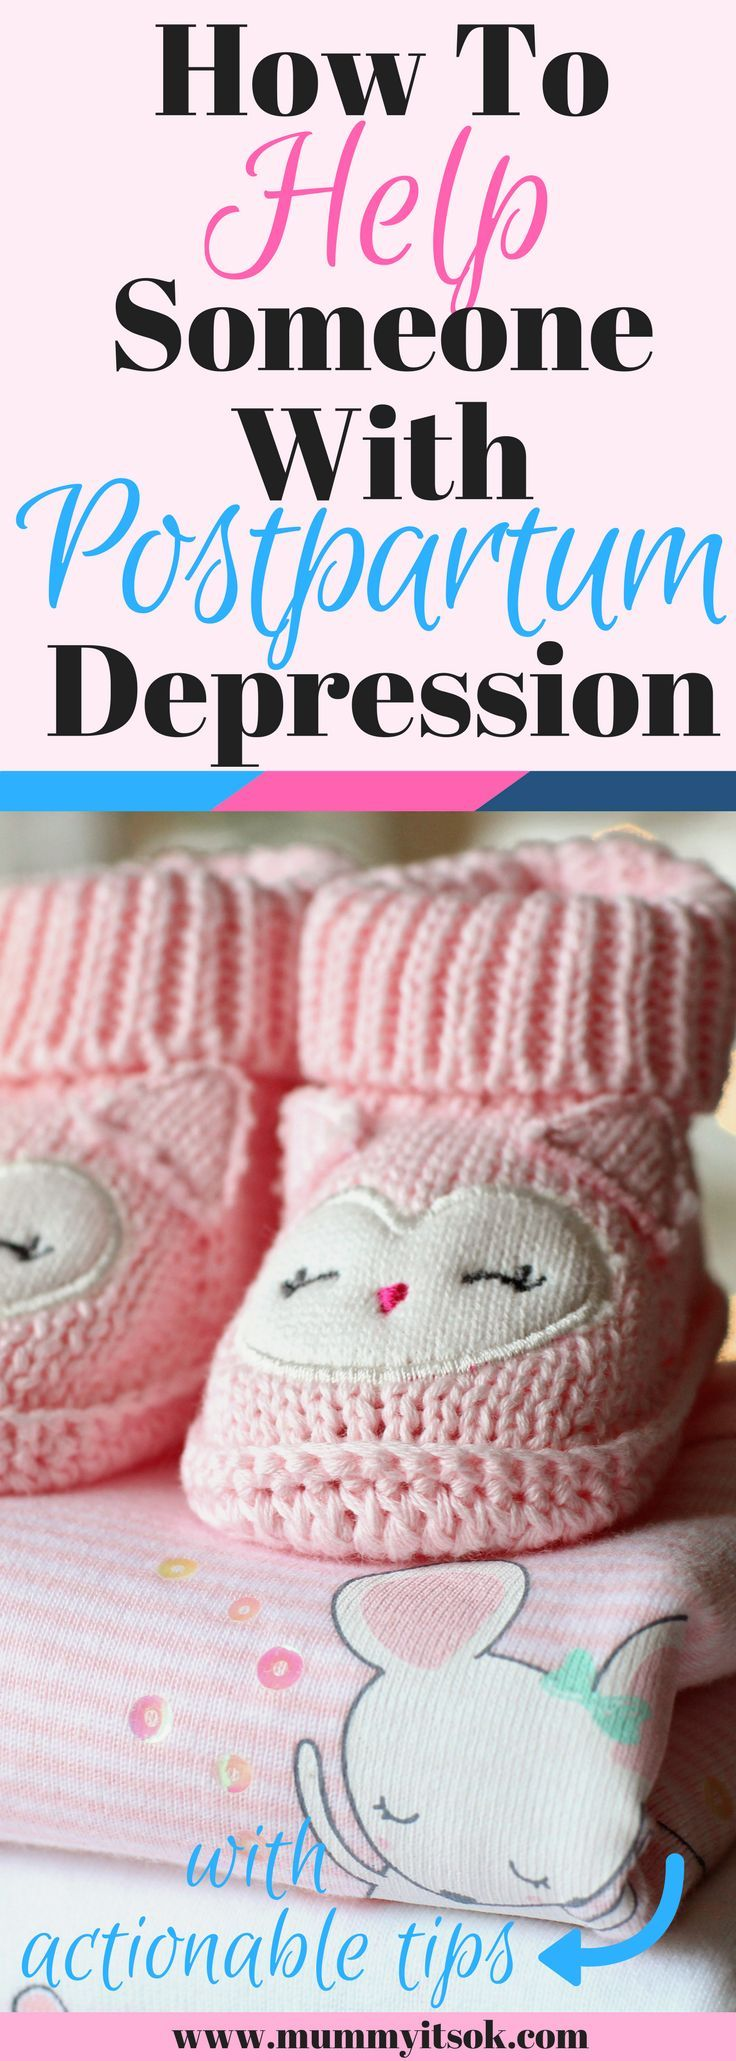 How To Help Someone With Postnatal Depression | How to Help Someone With  Postpartum Depression | Postpartum Depression Help | Mental Health For Mums | Perinatal Mental Health | Maternal Mental Health | Baby Blues |